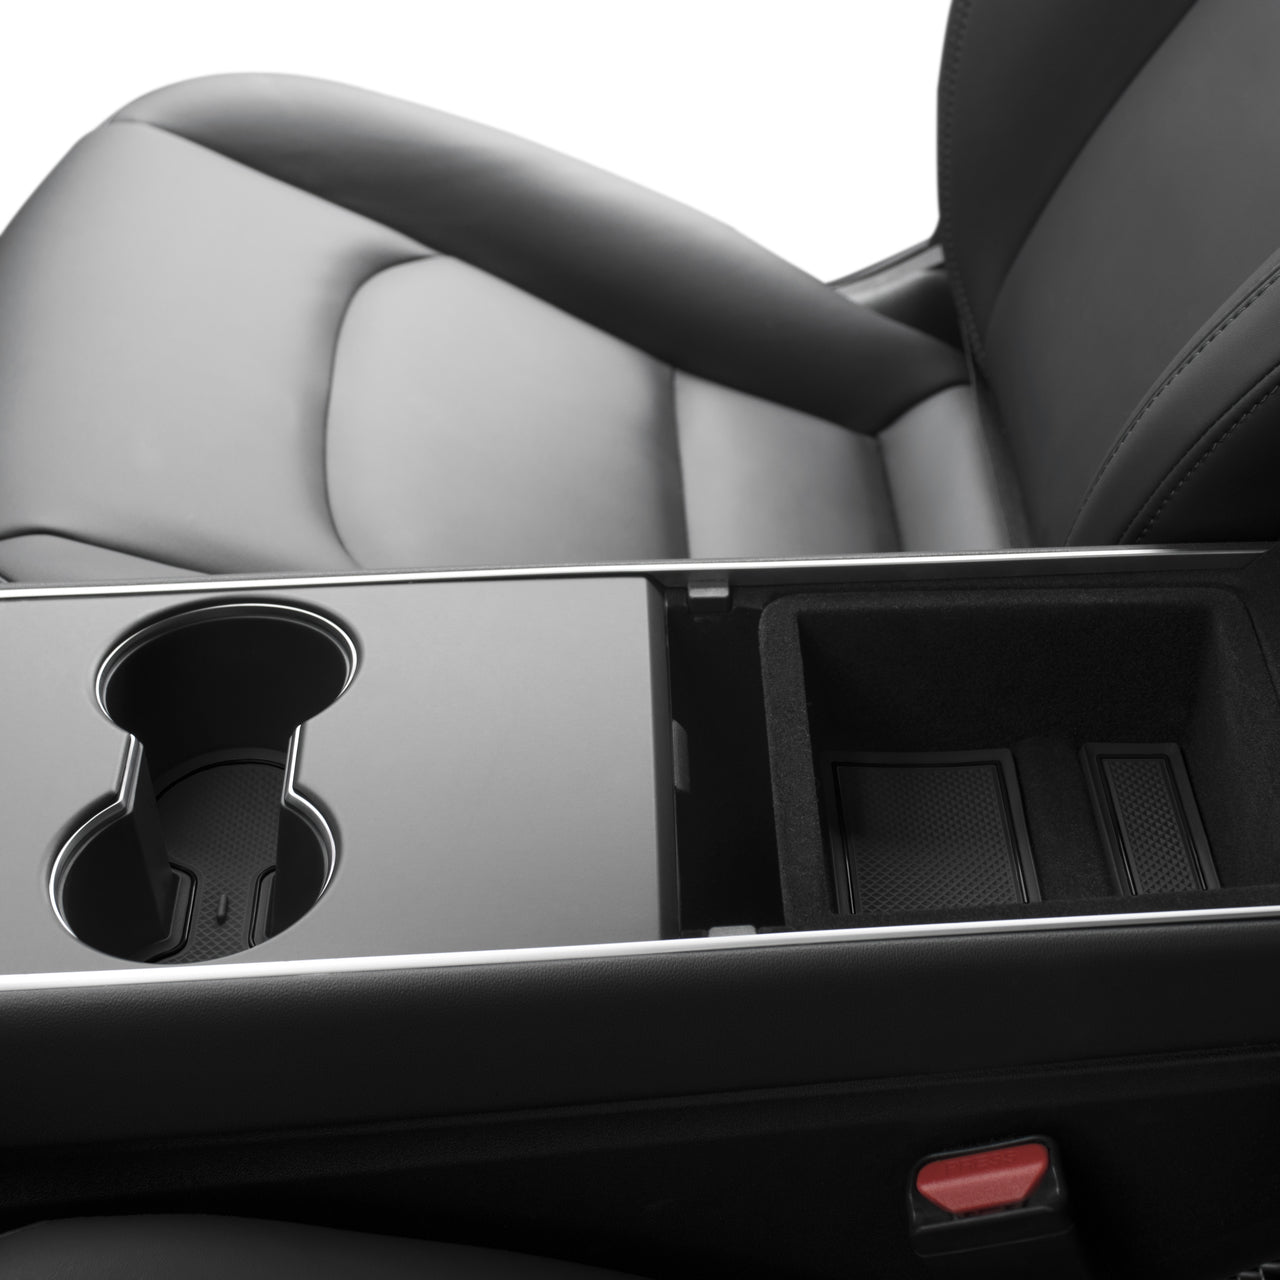 Center Console & Cup Holder Rubber Liners for Model 3 & Y